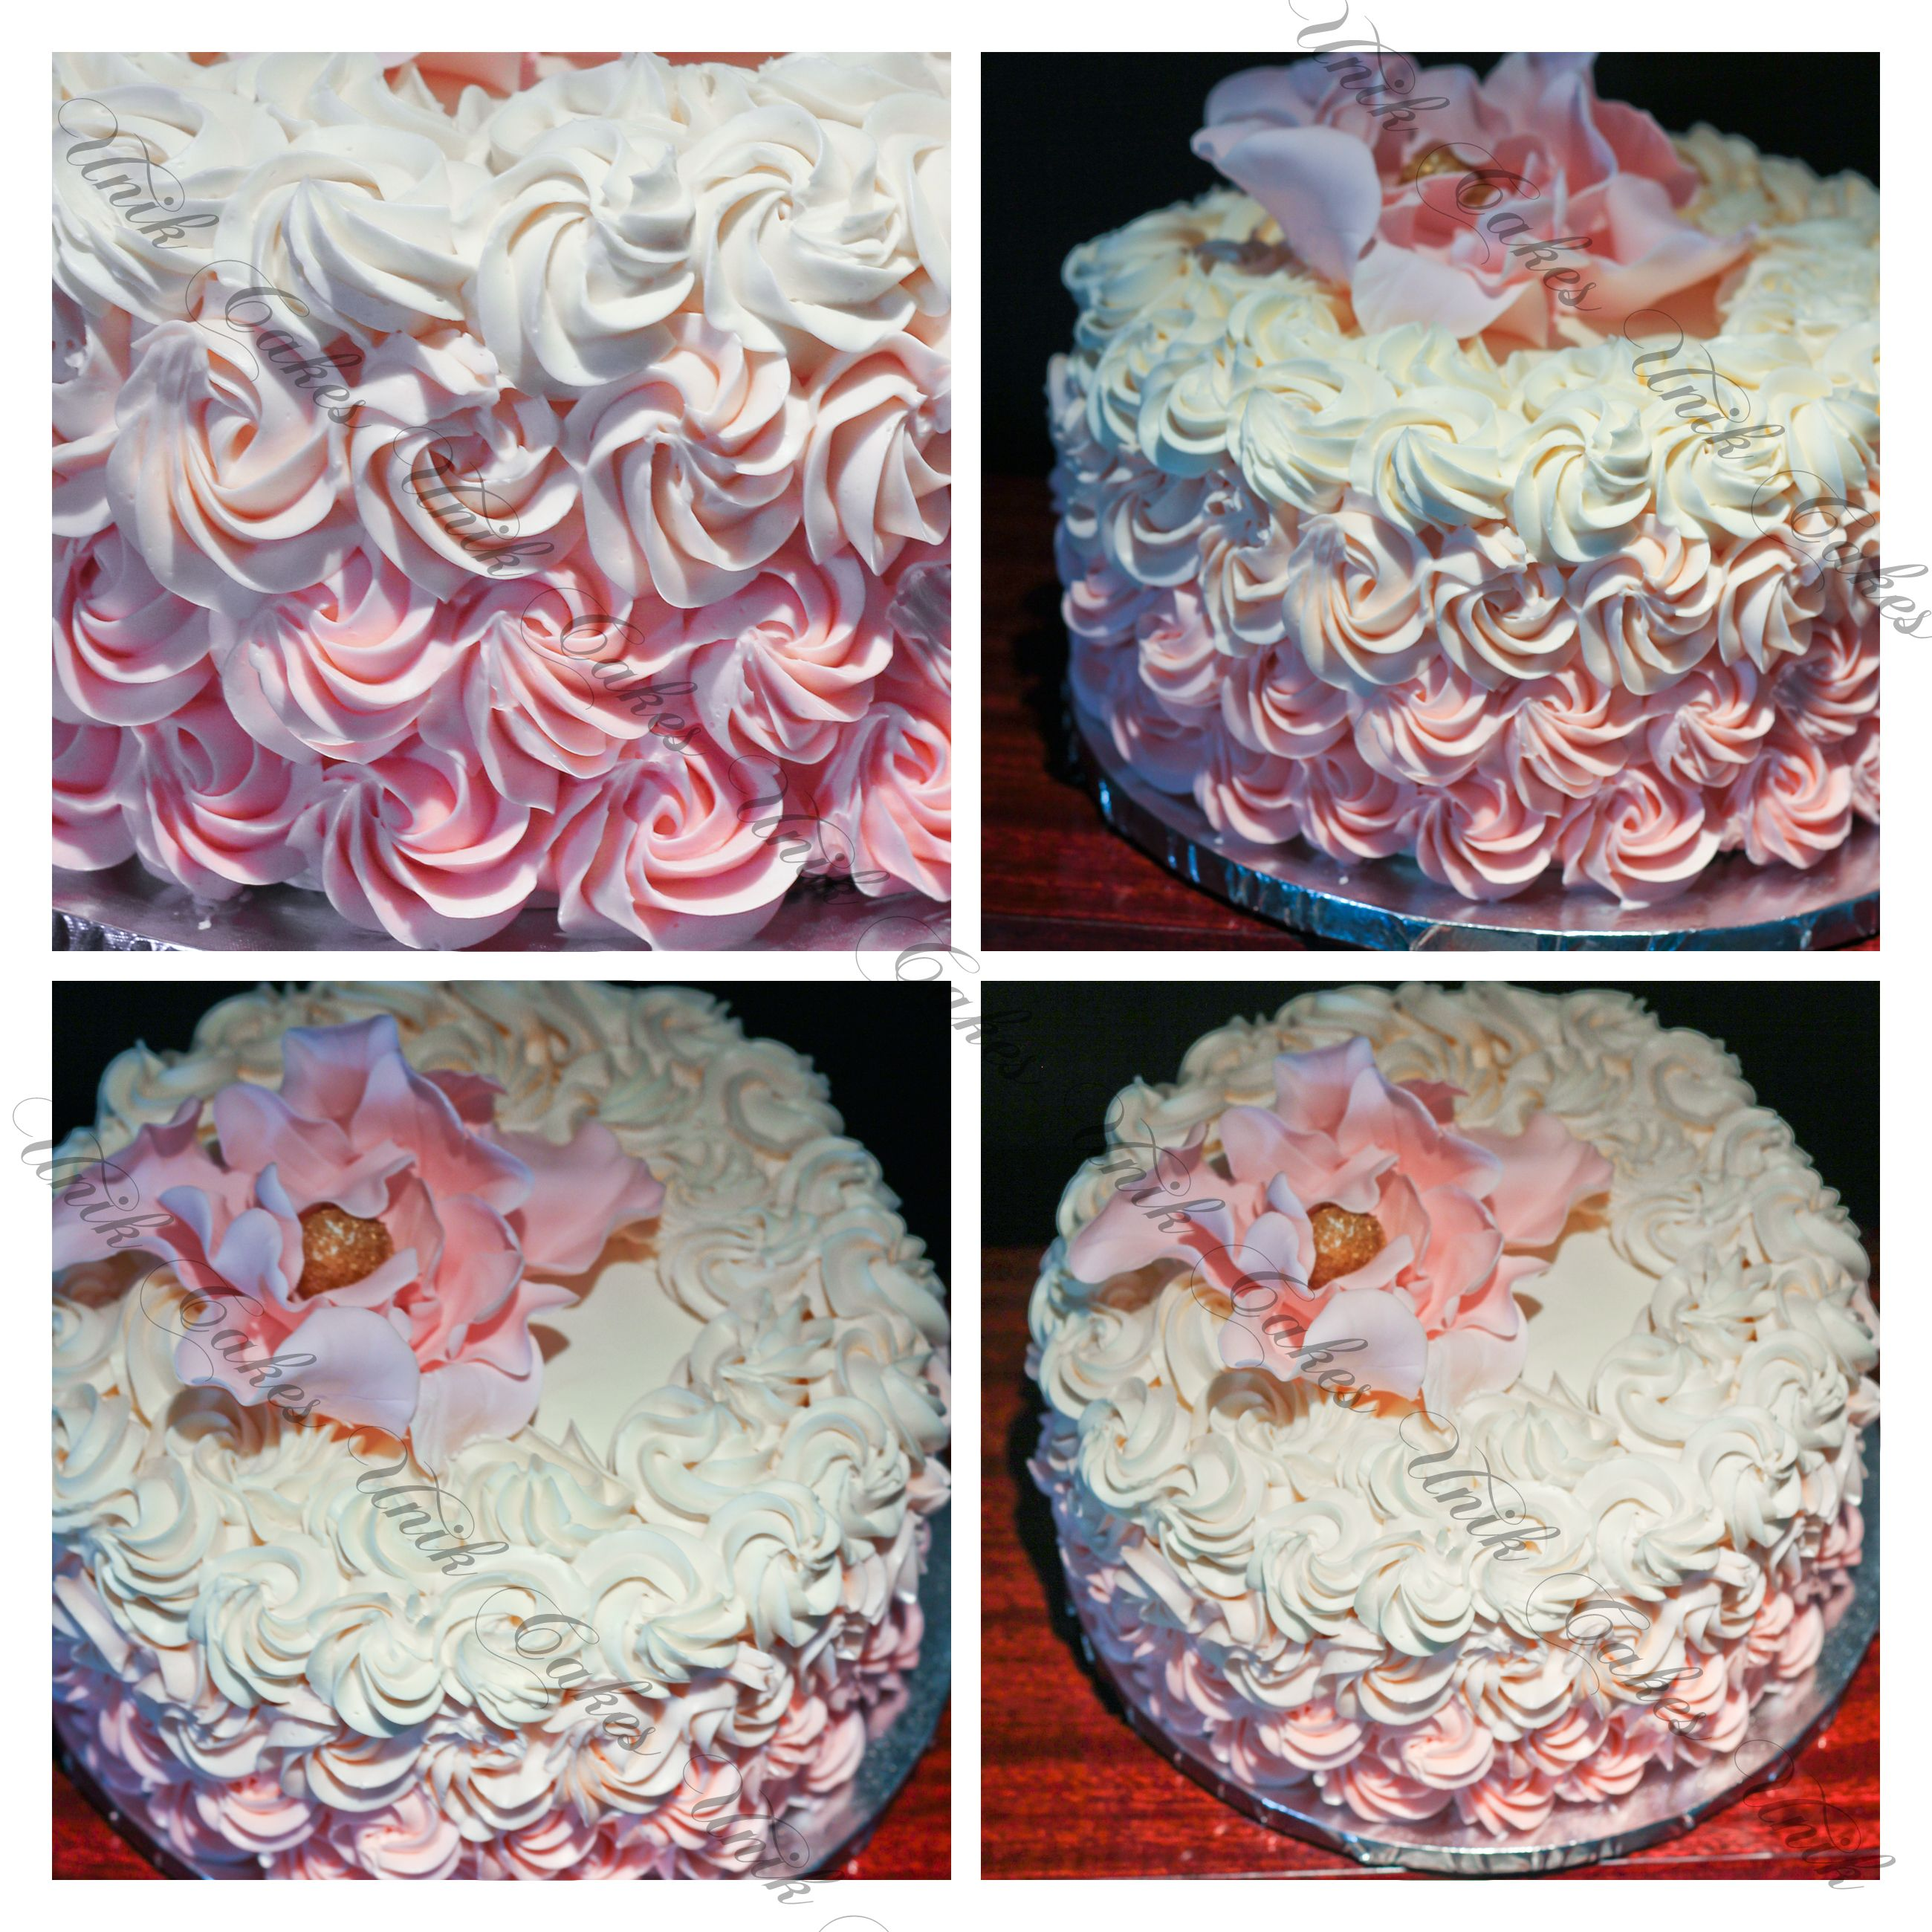 Swiss meringue butter cream cake decorated with rosettes for my grandmother. I could not resist putting on a sugar flower on top.